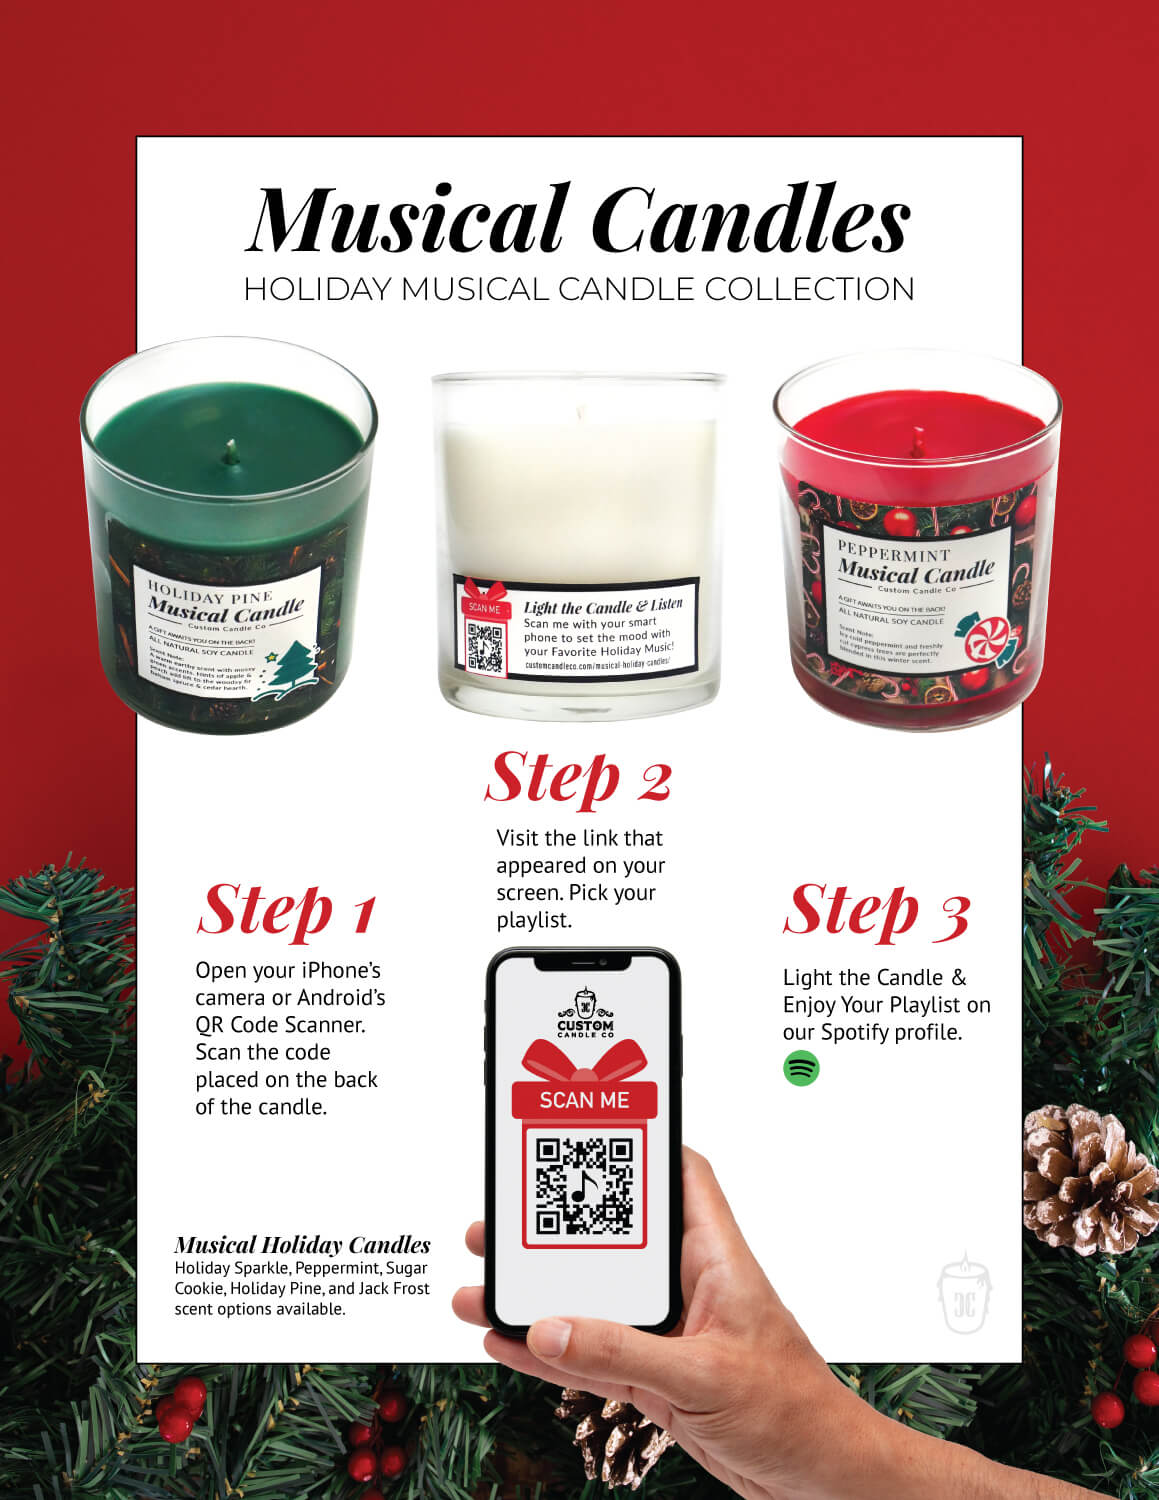 How to Use Musical Candles?